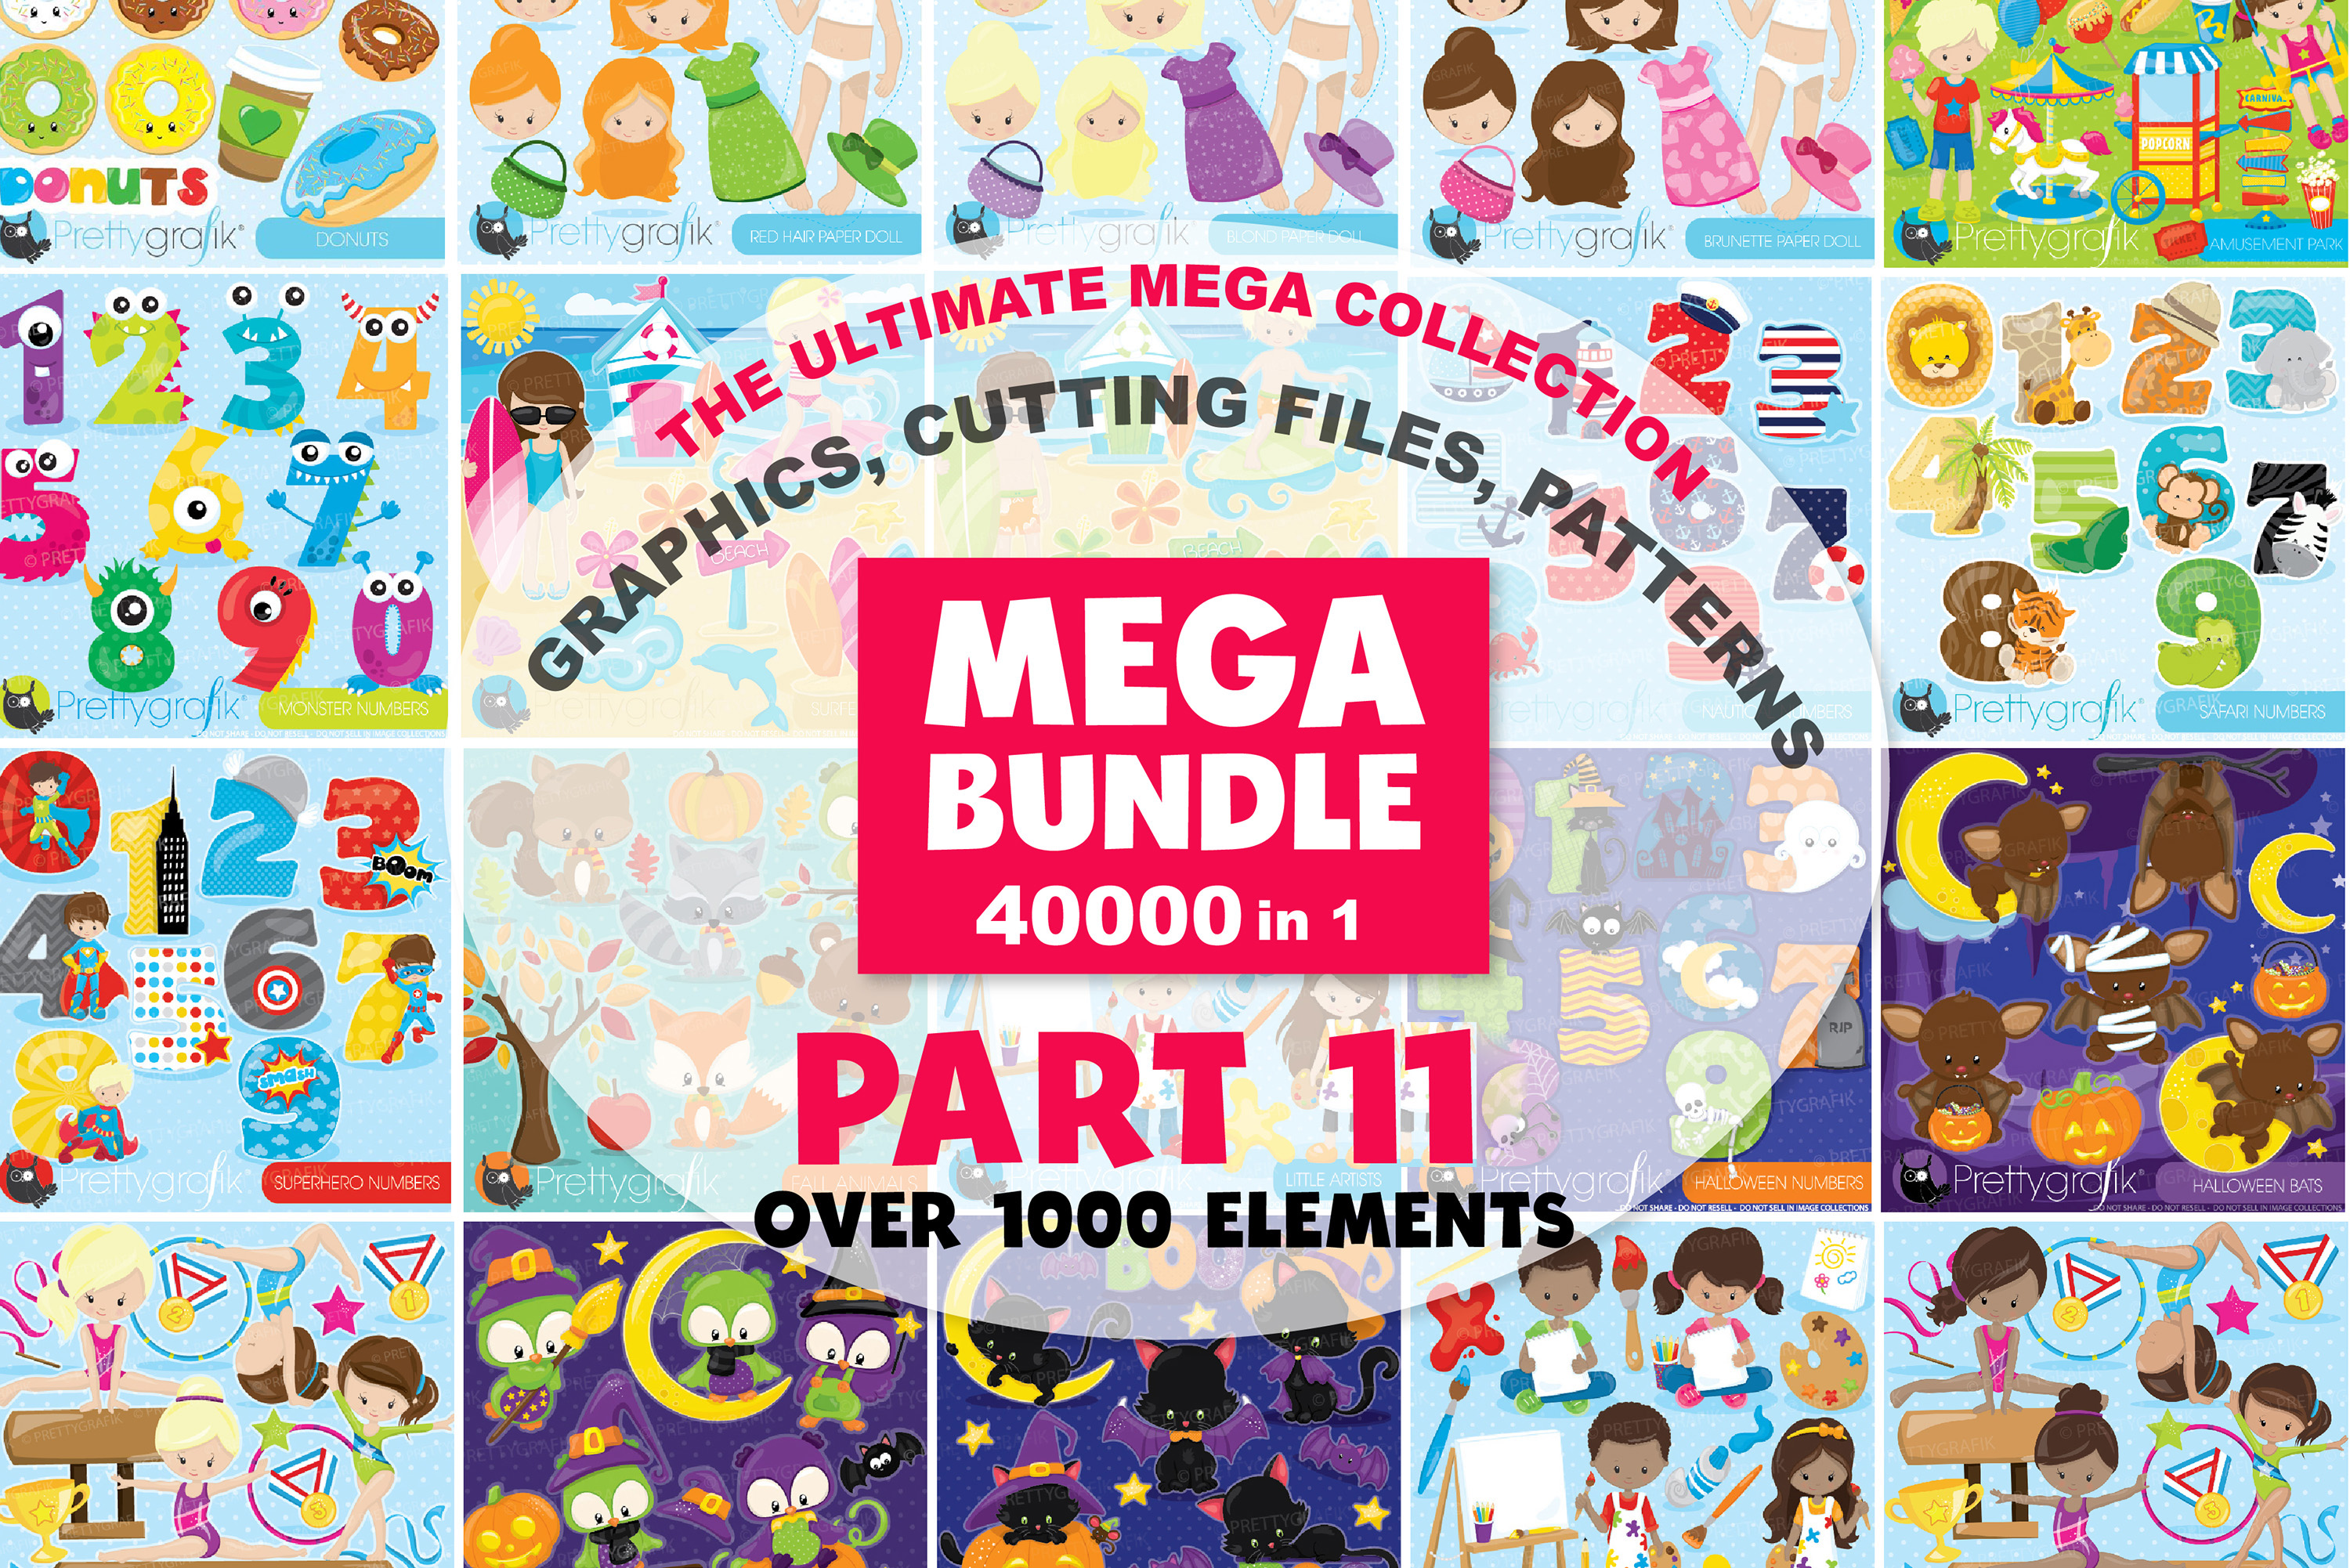 MEGA BUNDLE PART11 - 40000 in 1 Full Collection example image 1